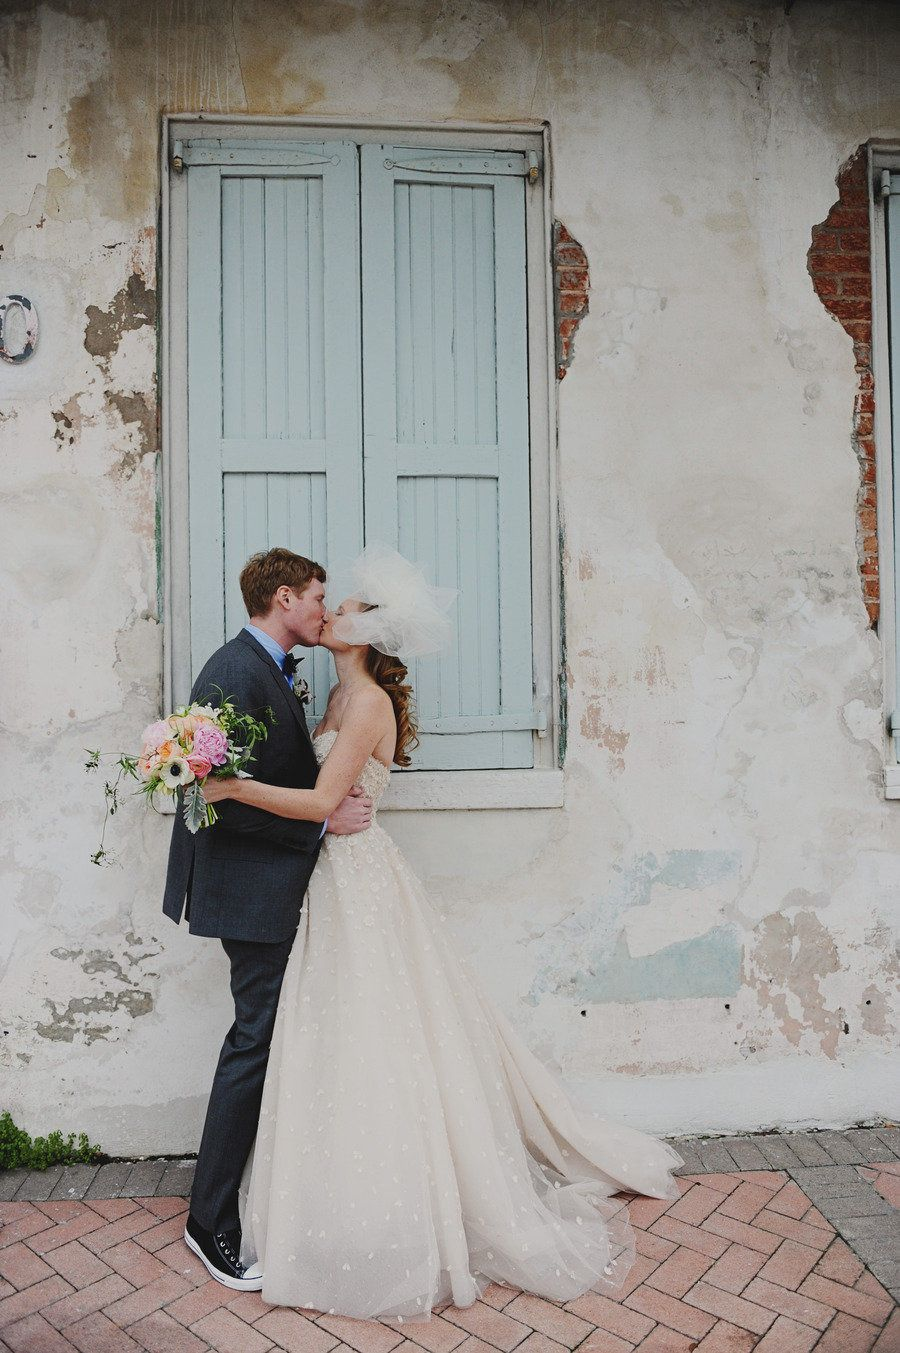 New Orleans Wedding from Amy Carroll Photography | Amy, Weddings and ...